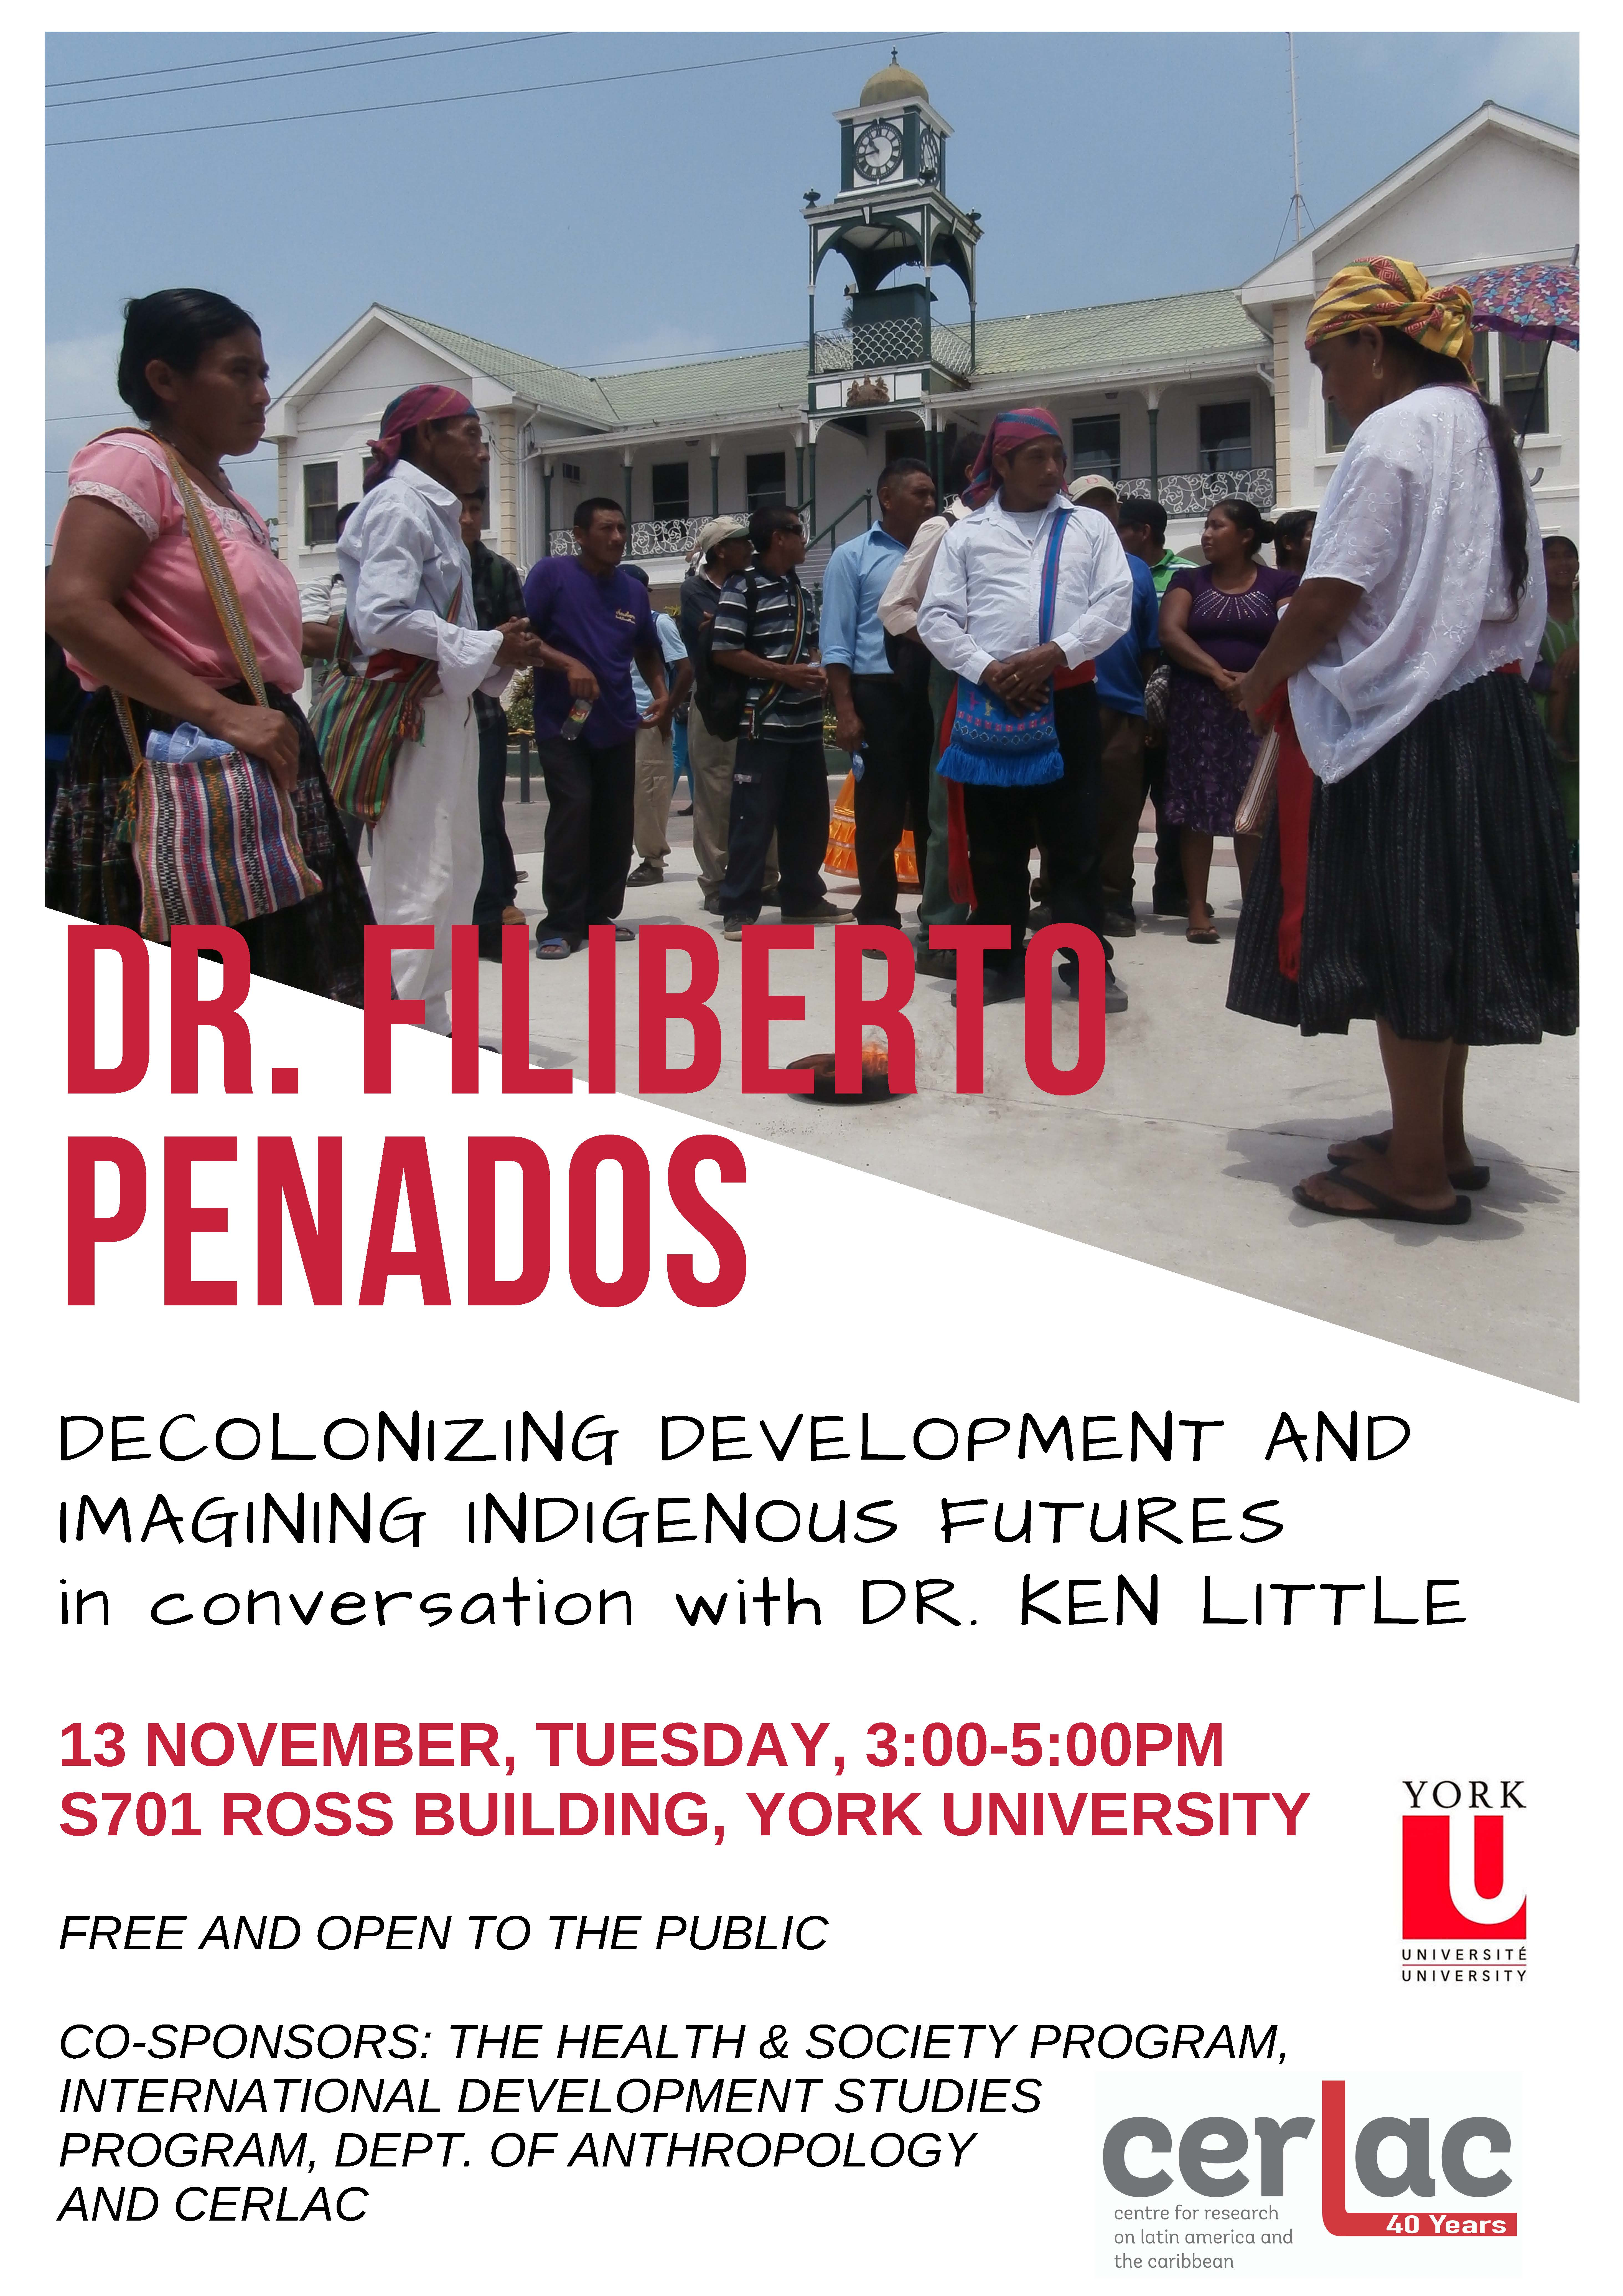 Dr. Filiberto Penados - Decolonizing Development and Imagining Indigenous Futures in conversation with Dr. Ken Little. @ S701 Ross Building